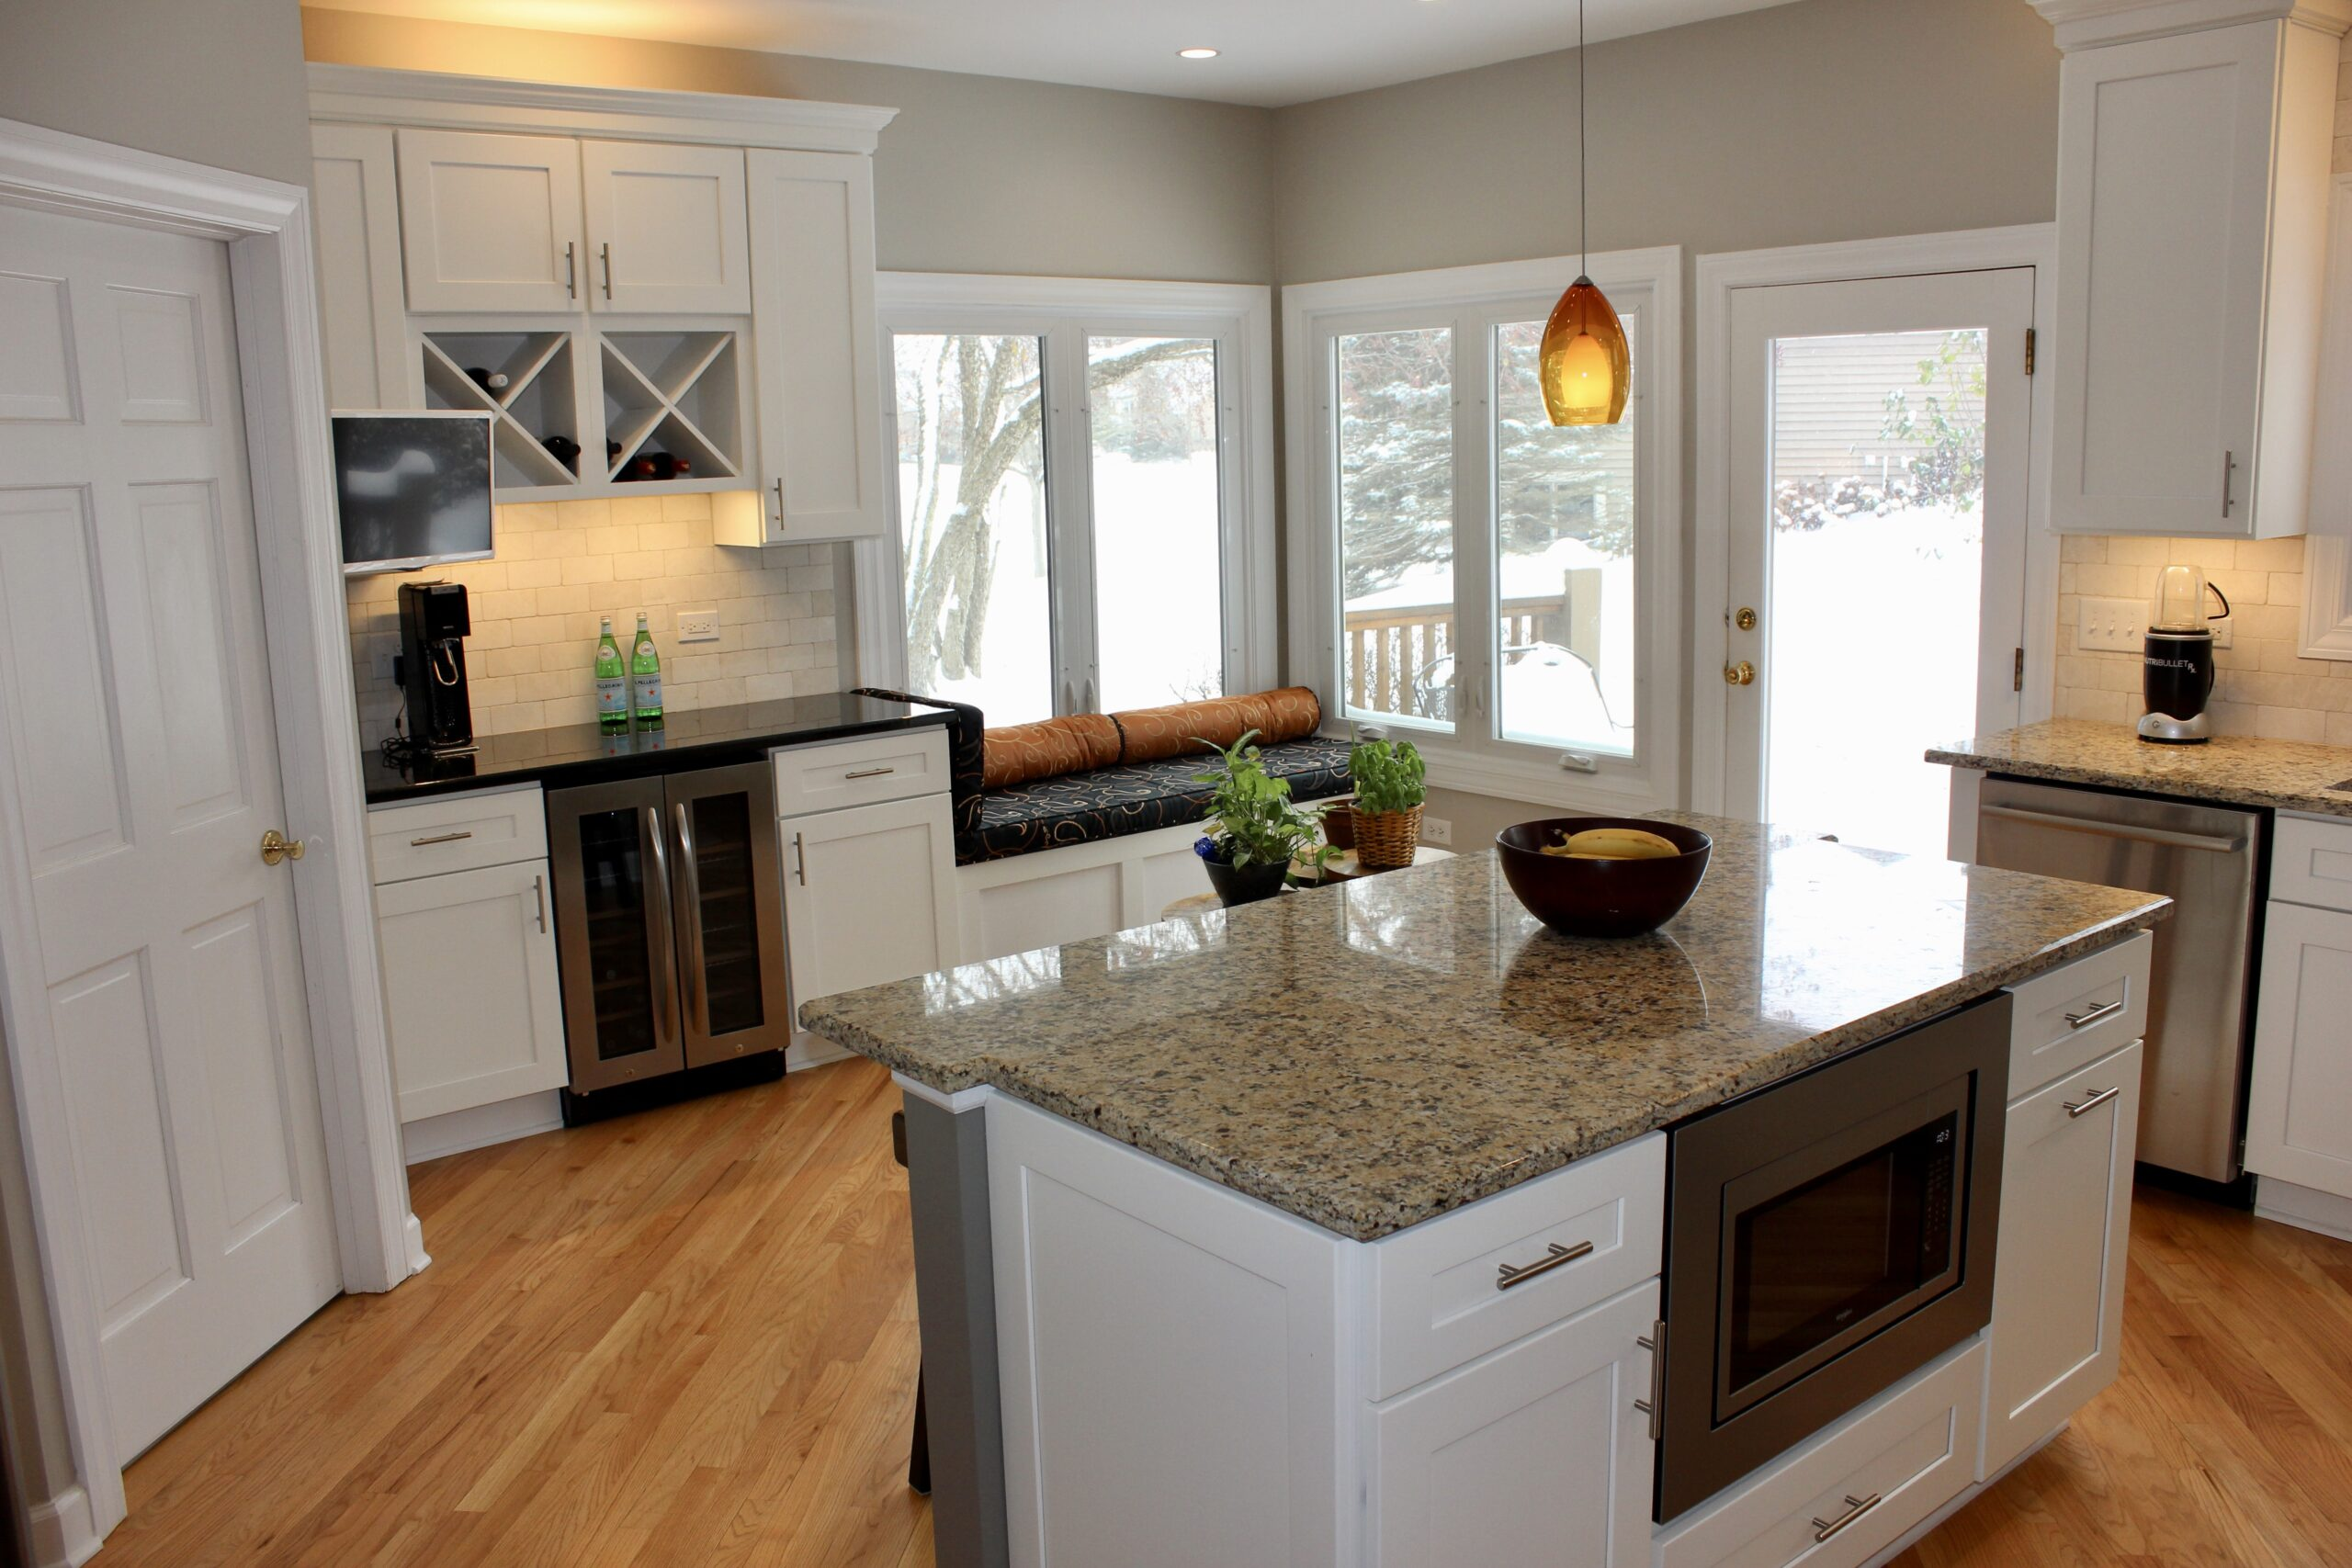 Custom kitchen with granite countertops, wod flooring and stainless appliances